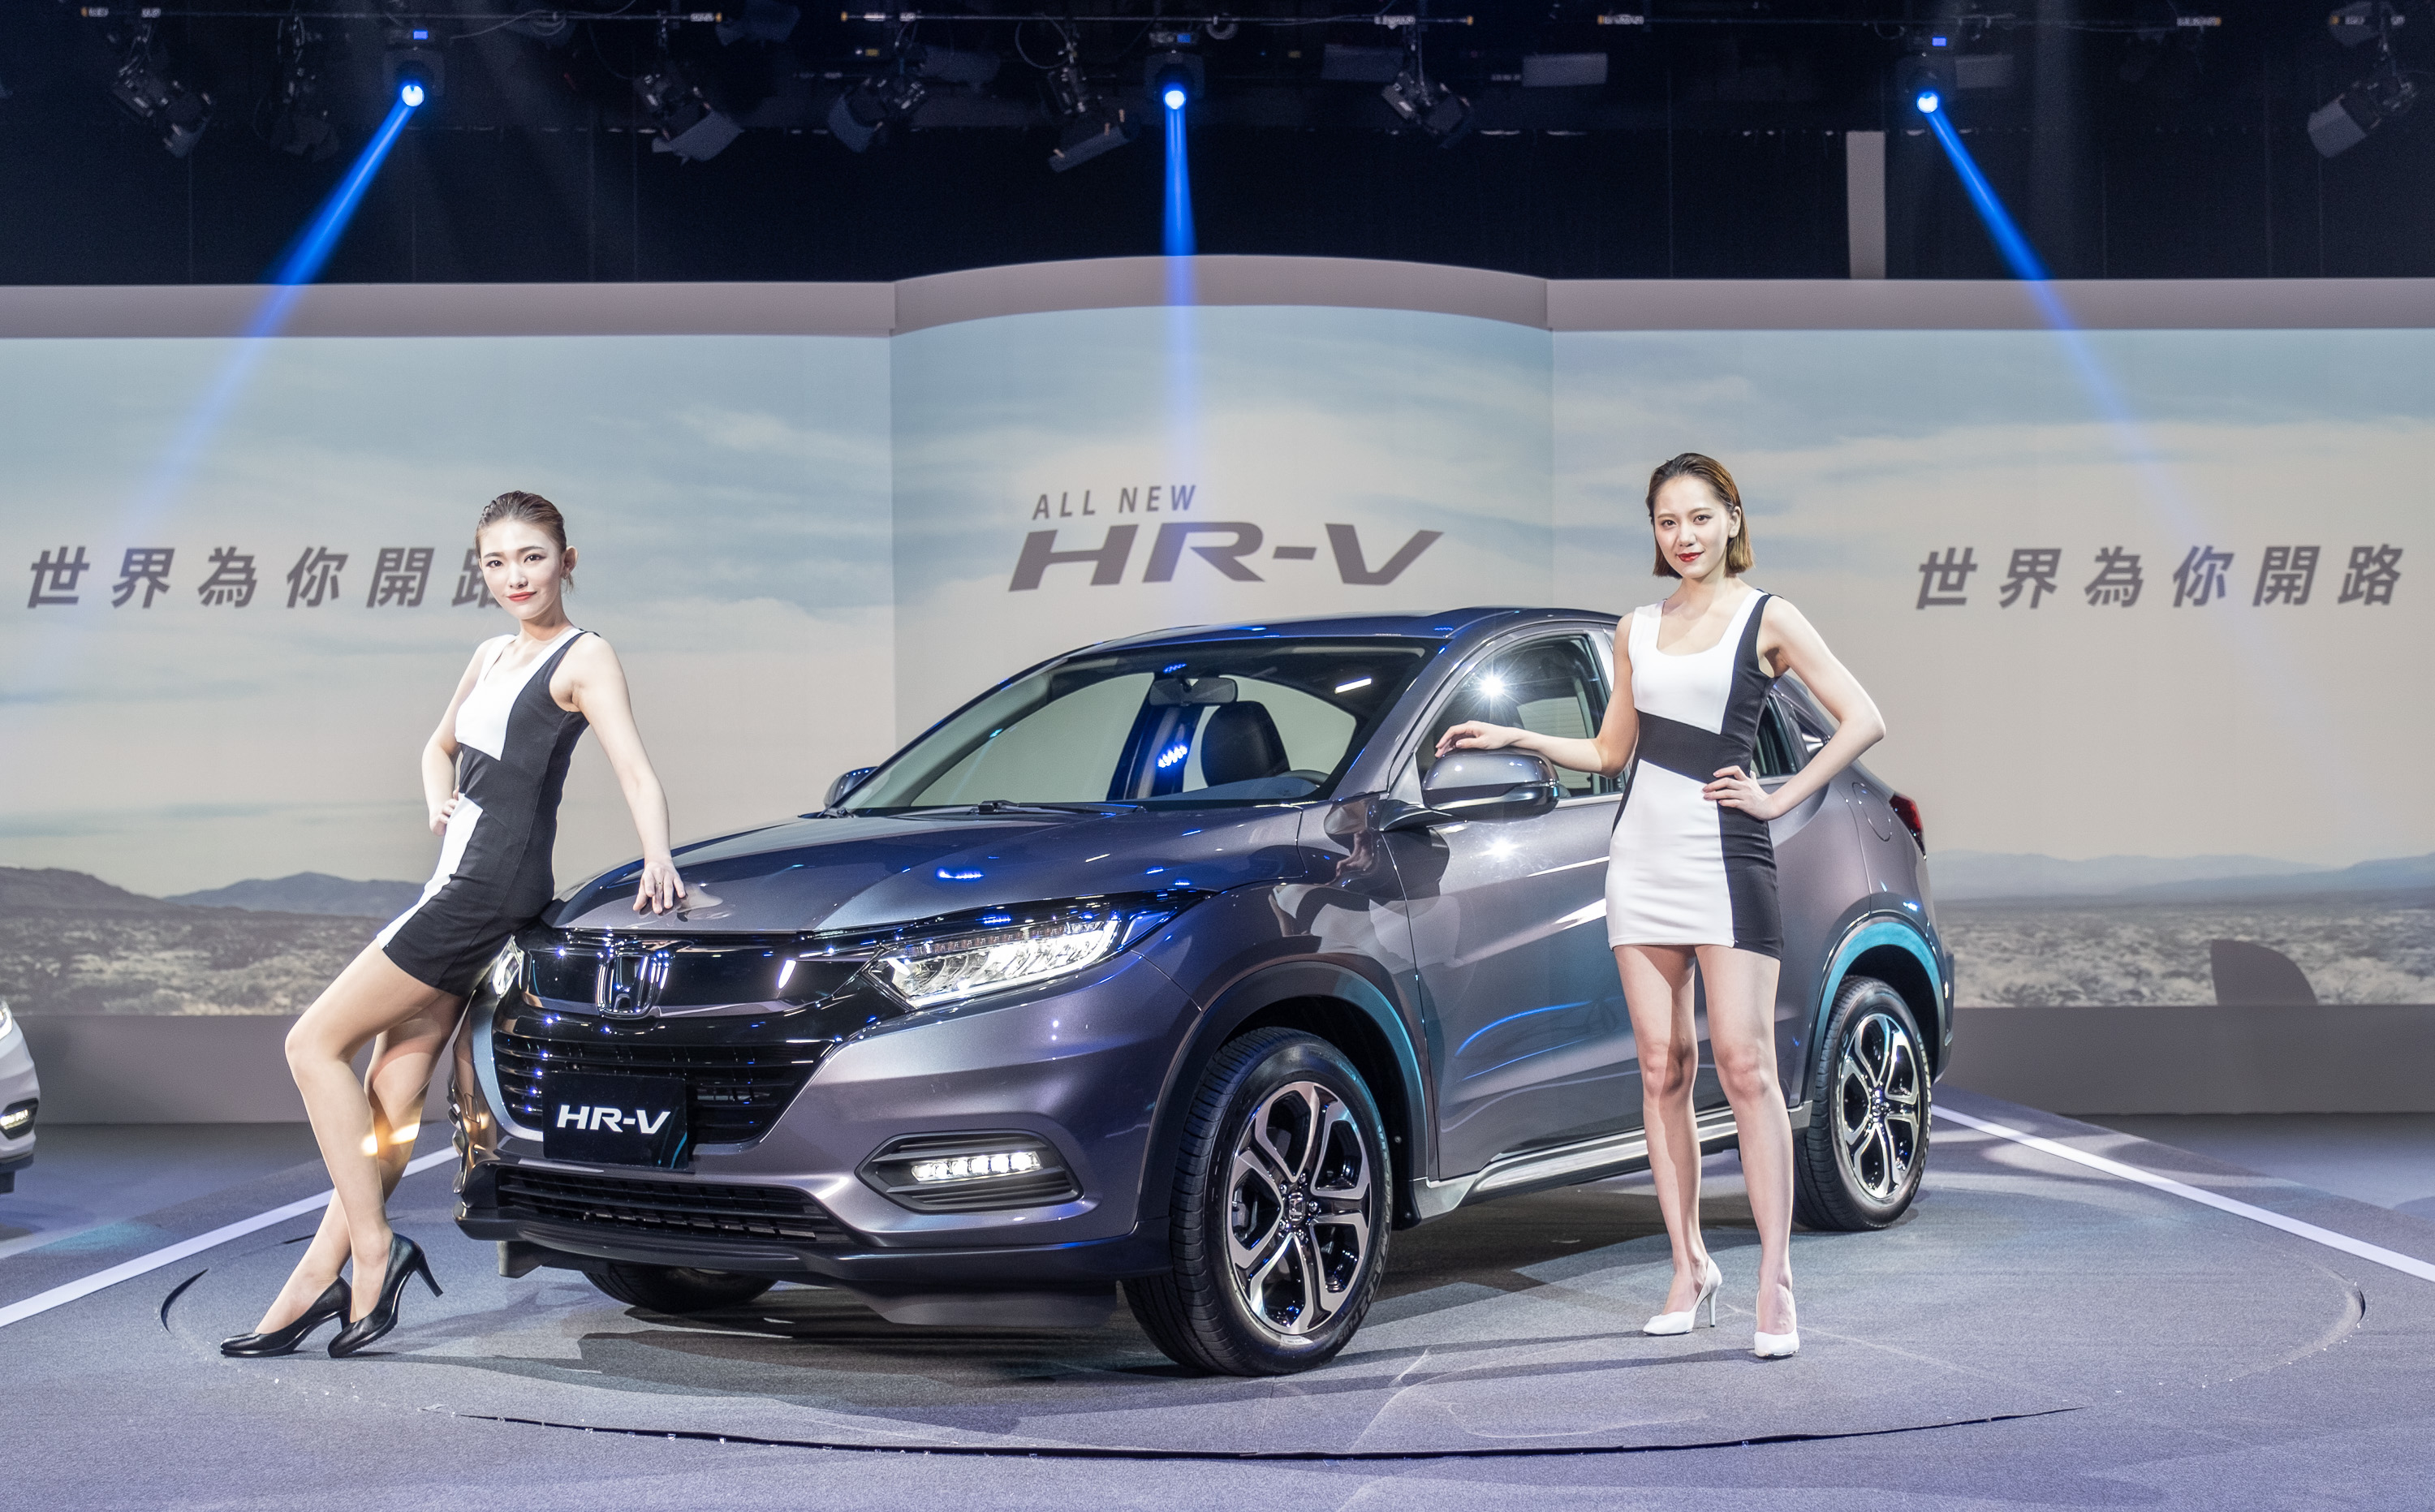 Honda, Sport utility vehicle, Honda HR-V, Car, Auto show, , Compact car, Mid-size car, Crossover, Vehicle, auto show, Land vehicle, Vehicle, Car, Auto show, Honda, Sport utility vehicle, Automotive design, Mini SUV, Compact car, Crossover suv,汽車,車輛,汽車設計,中型車,小型車,越野車,本田,陸地車輛,車展,交叉,本田hr-v,迷你水,交叉水